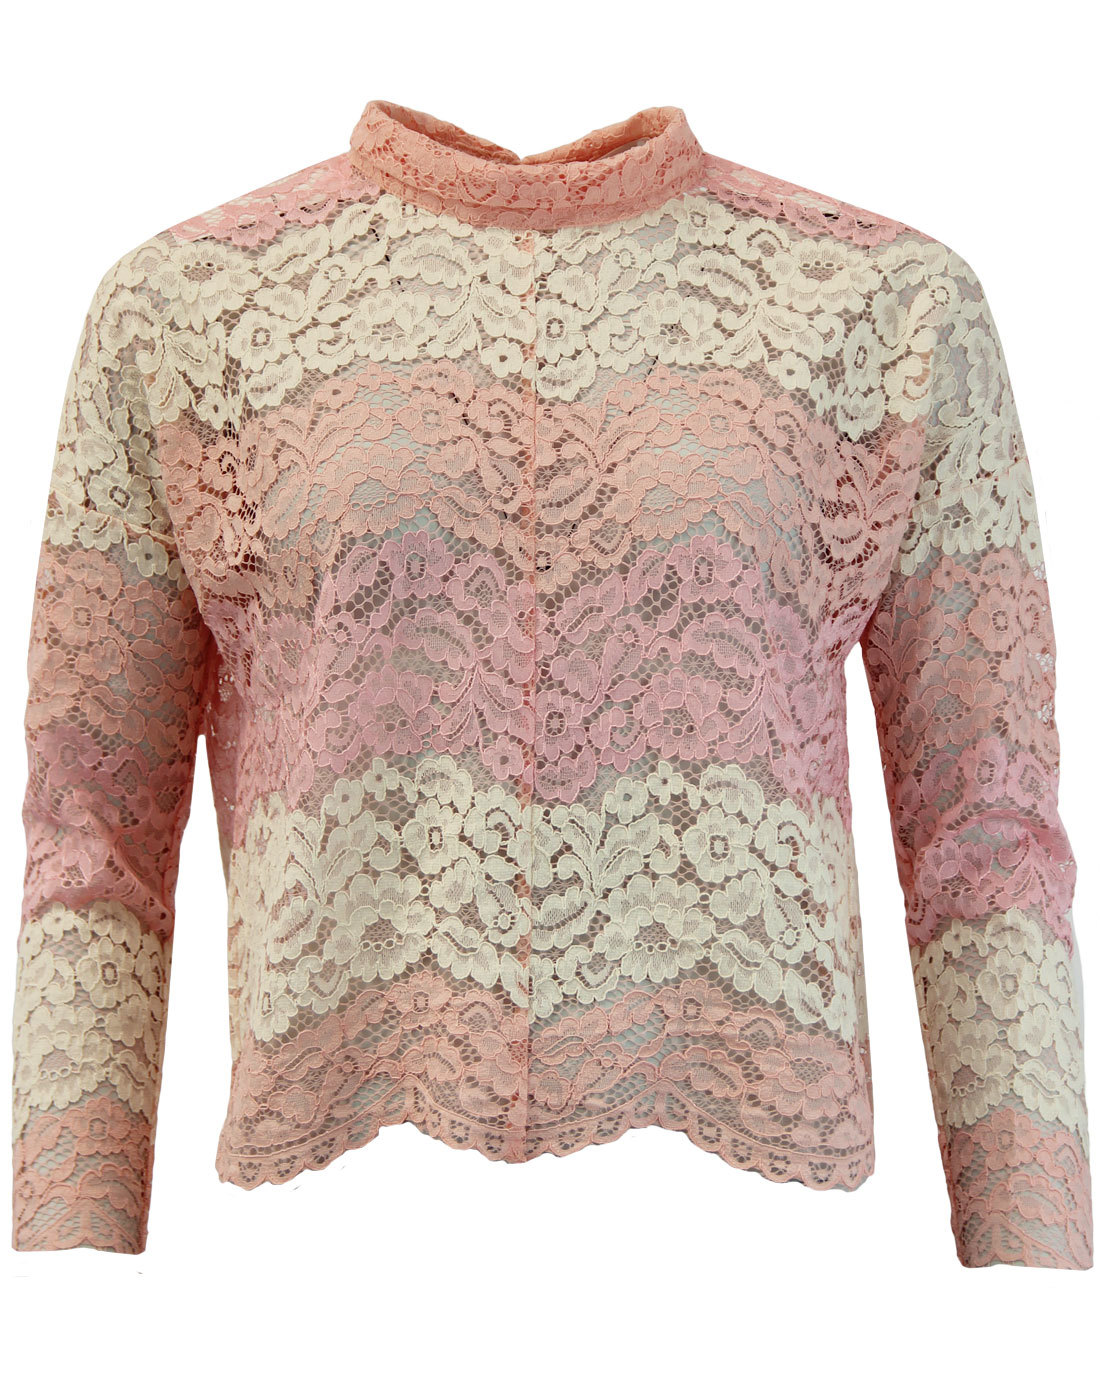 Forgotten Modesty TRAFFIC PEOPLE Floral Lace Top